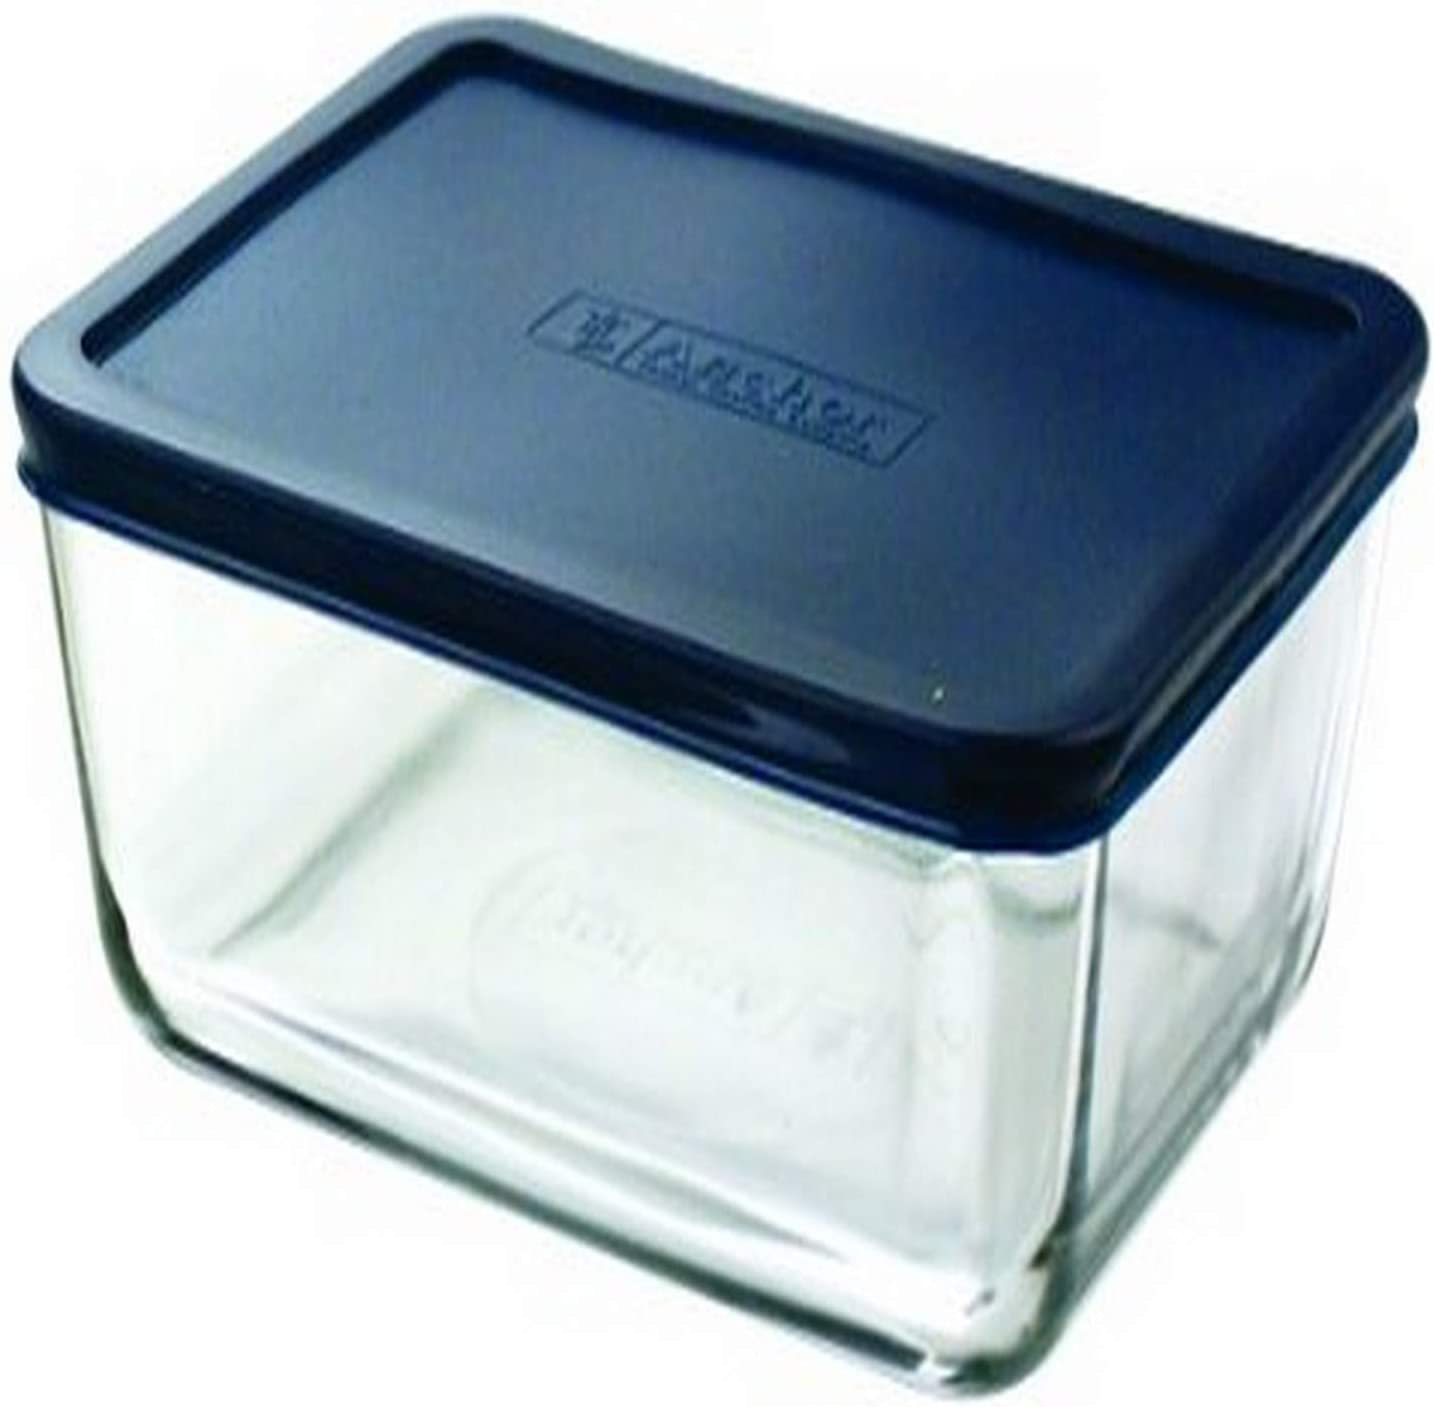 Anchor Hocking 11-Cup Rectangular Food Storage Containers, Blue, Set of 2 -